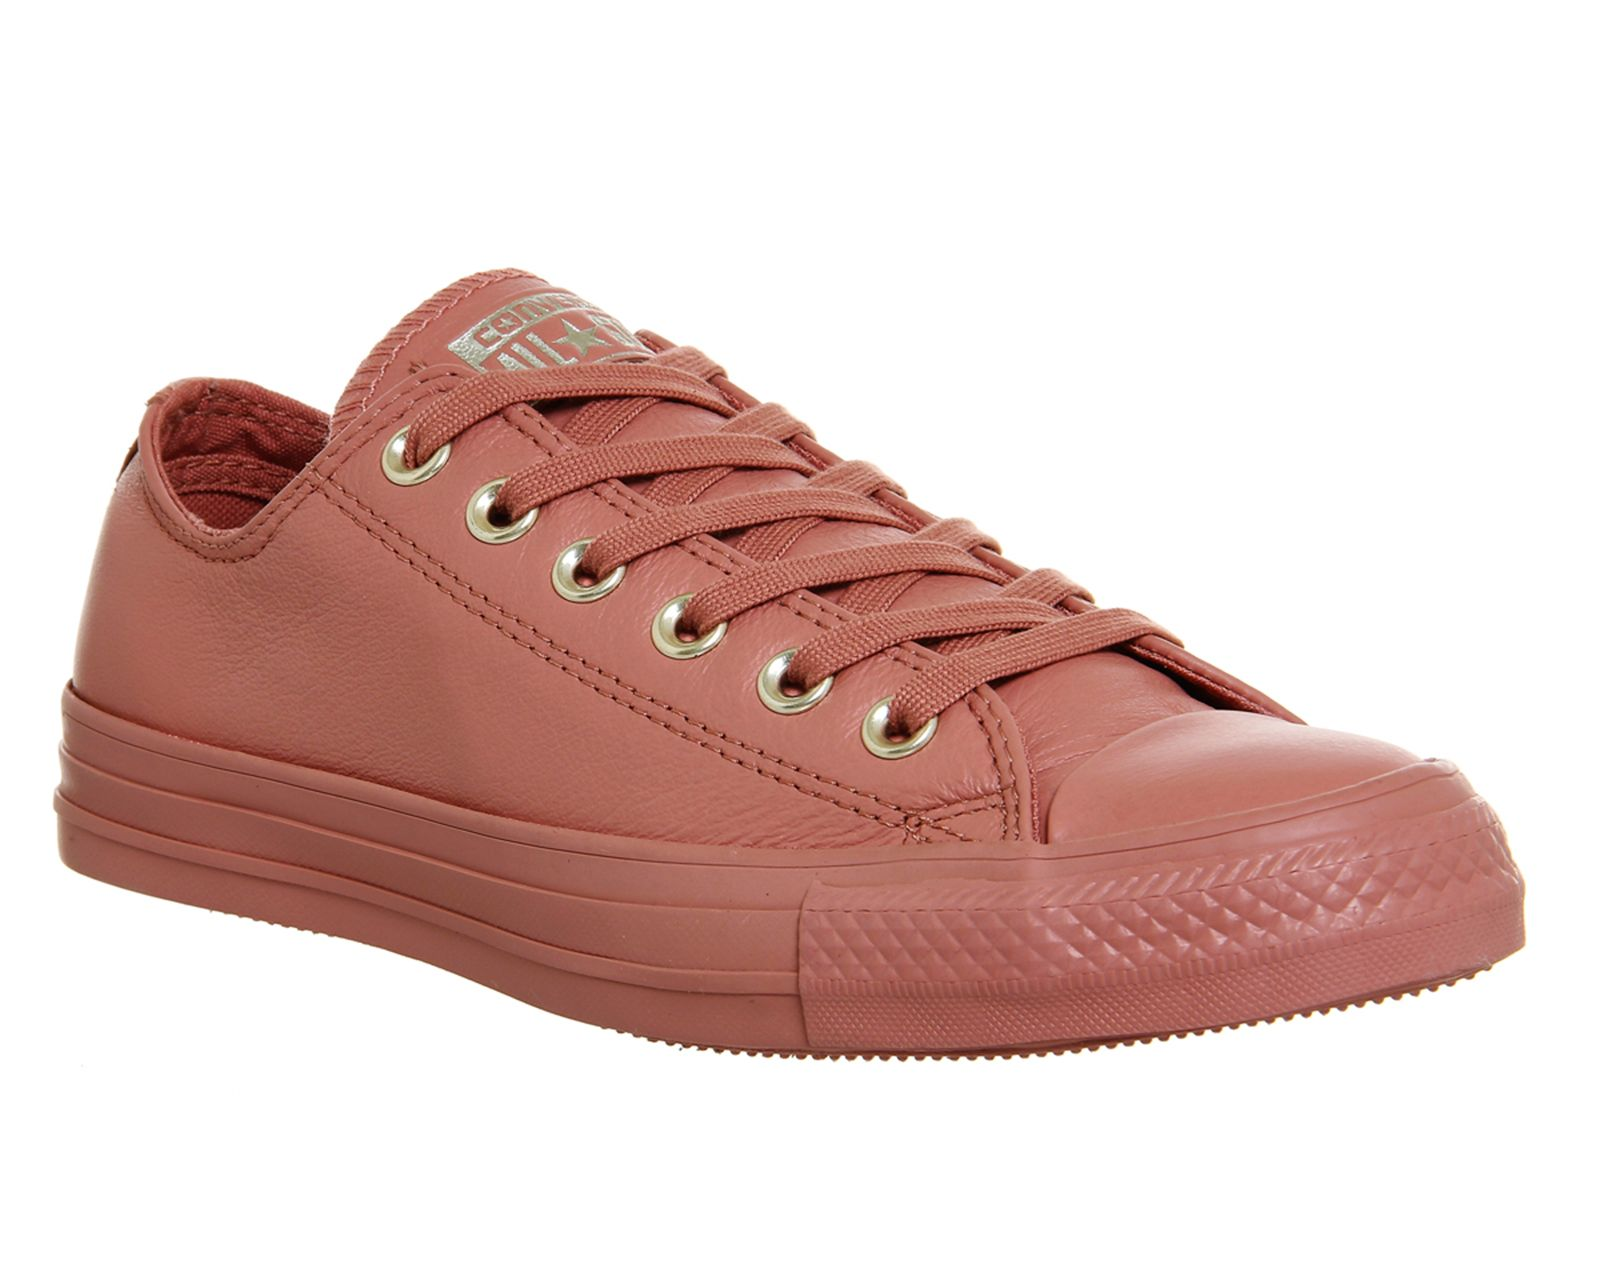 Converse All star low leather trainers Sand